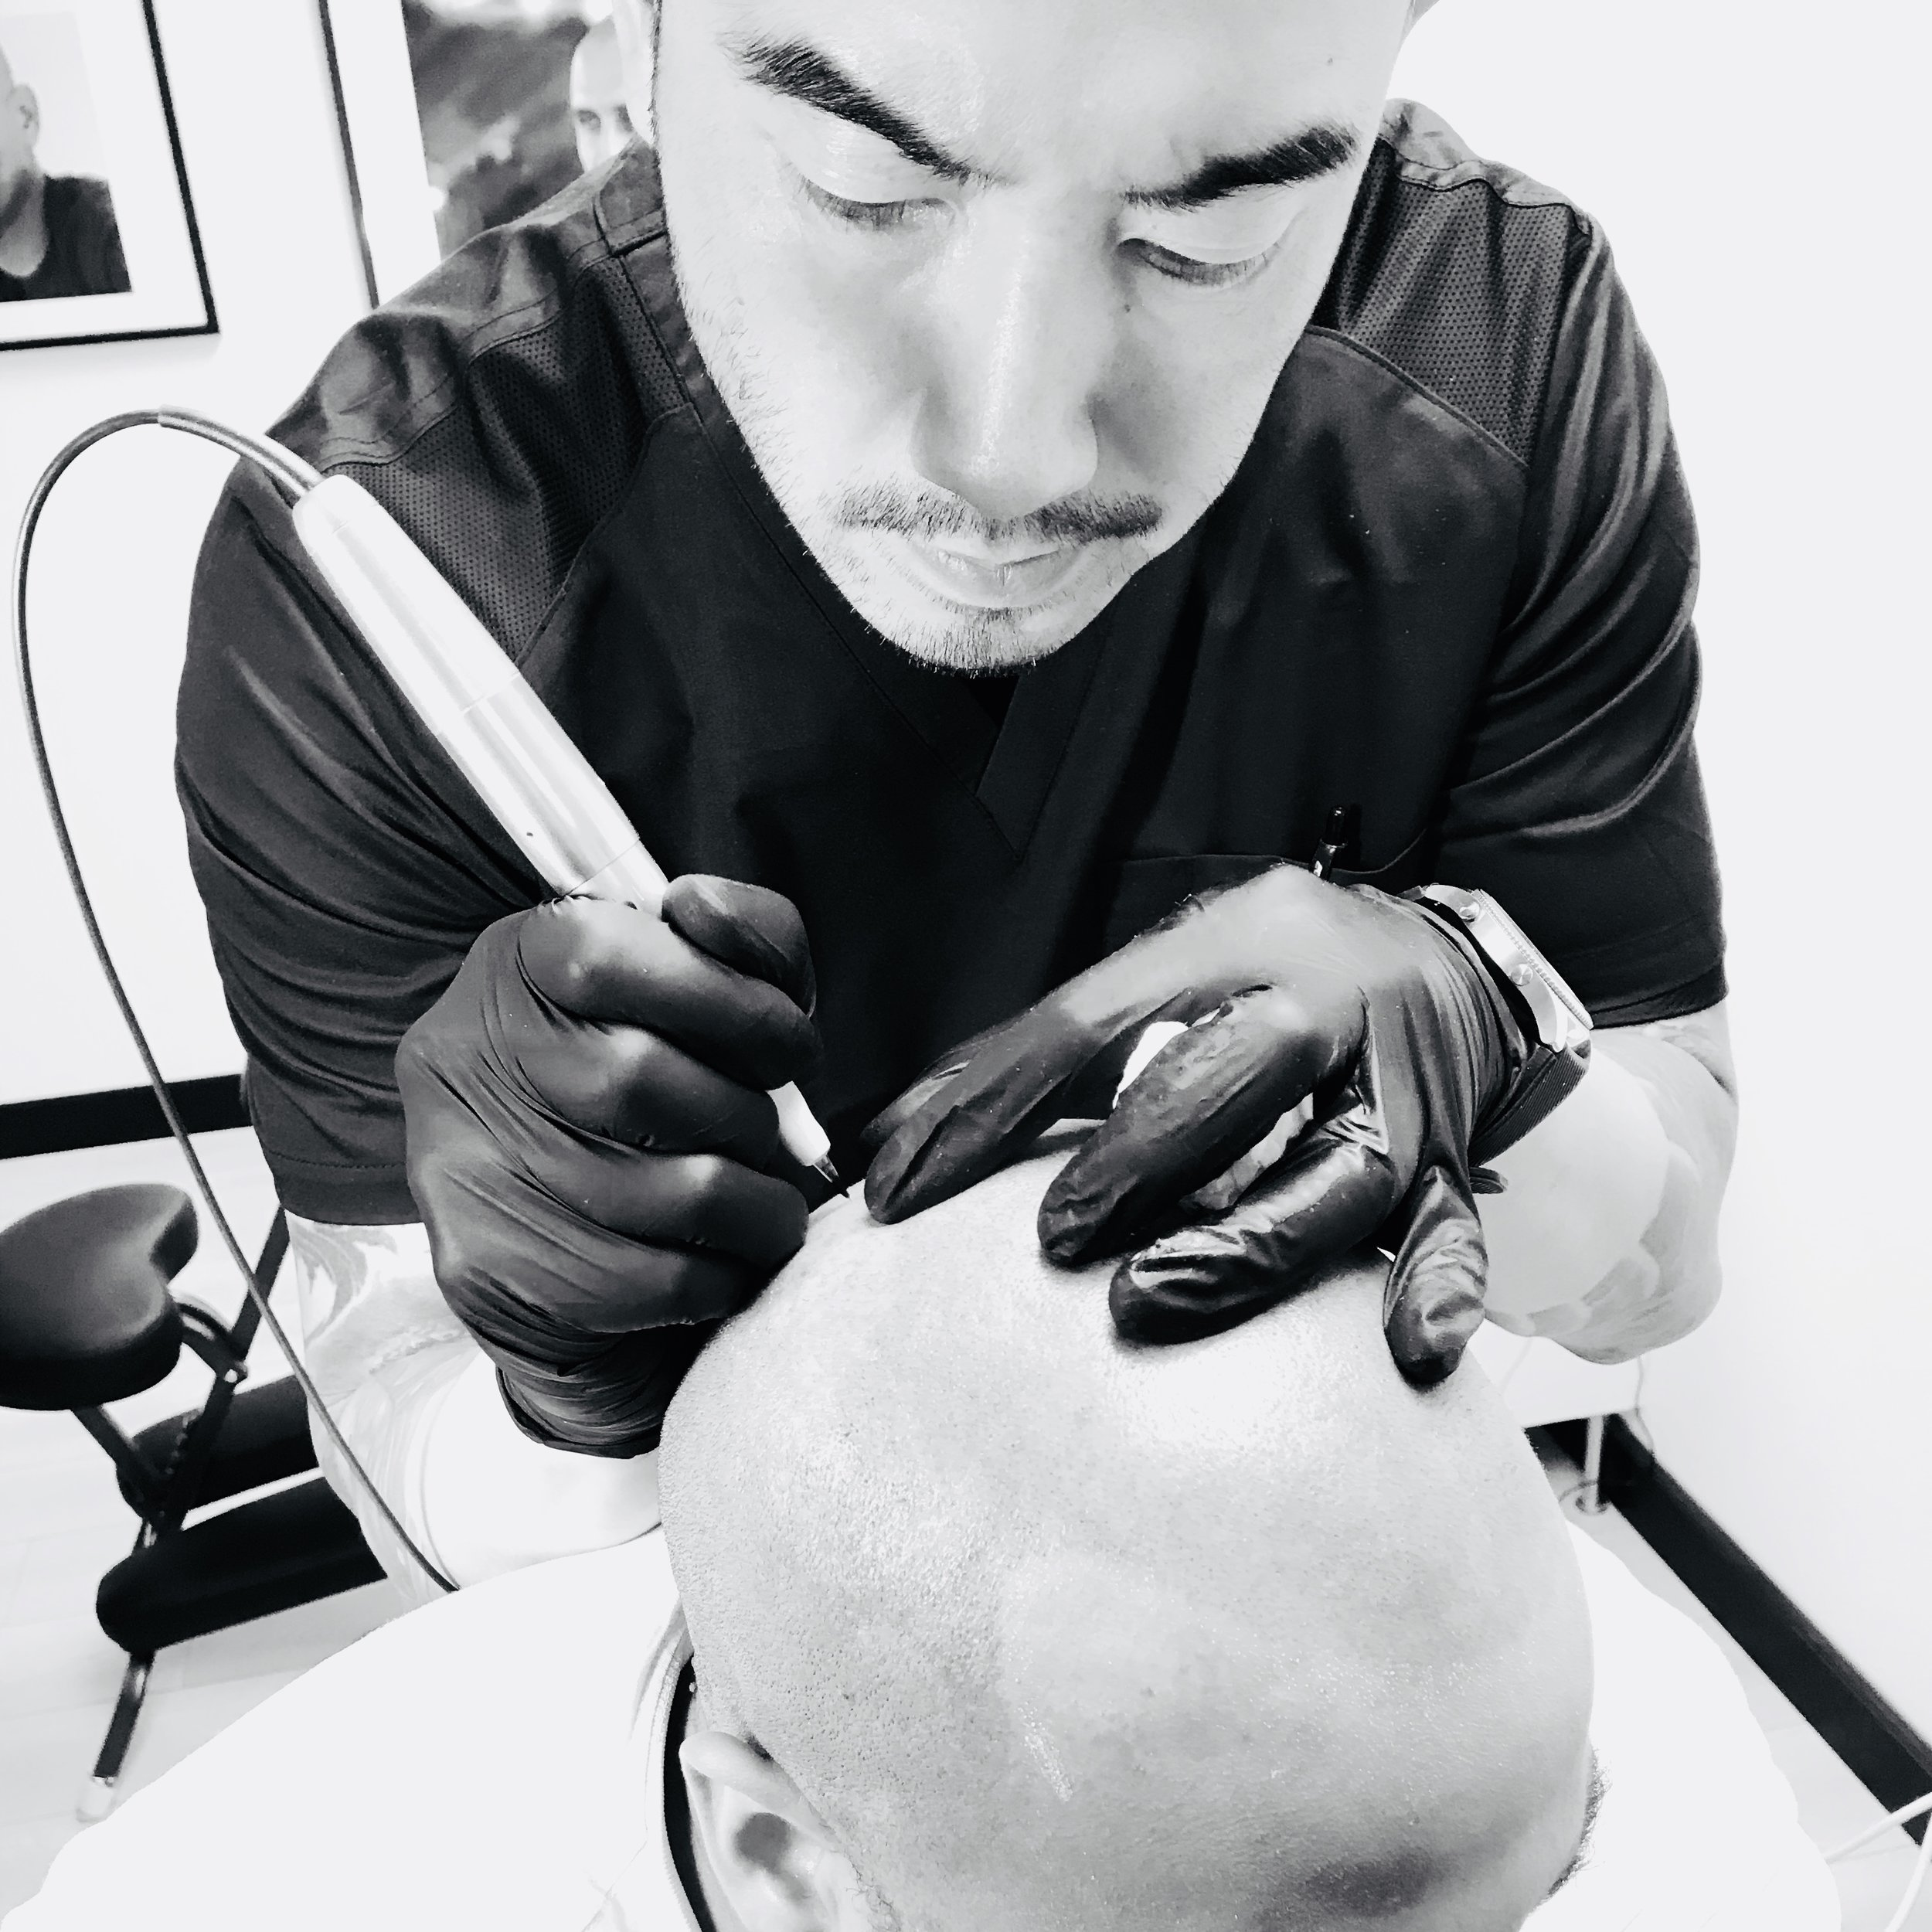 1st TreatmentWe will achieve total coverage for your hairline tattoo and give you an undertone that matches your skin.We will need to buzz down your head if needed in clinic. -